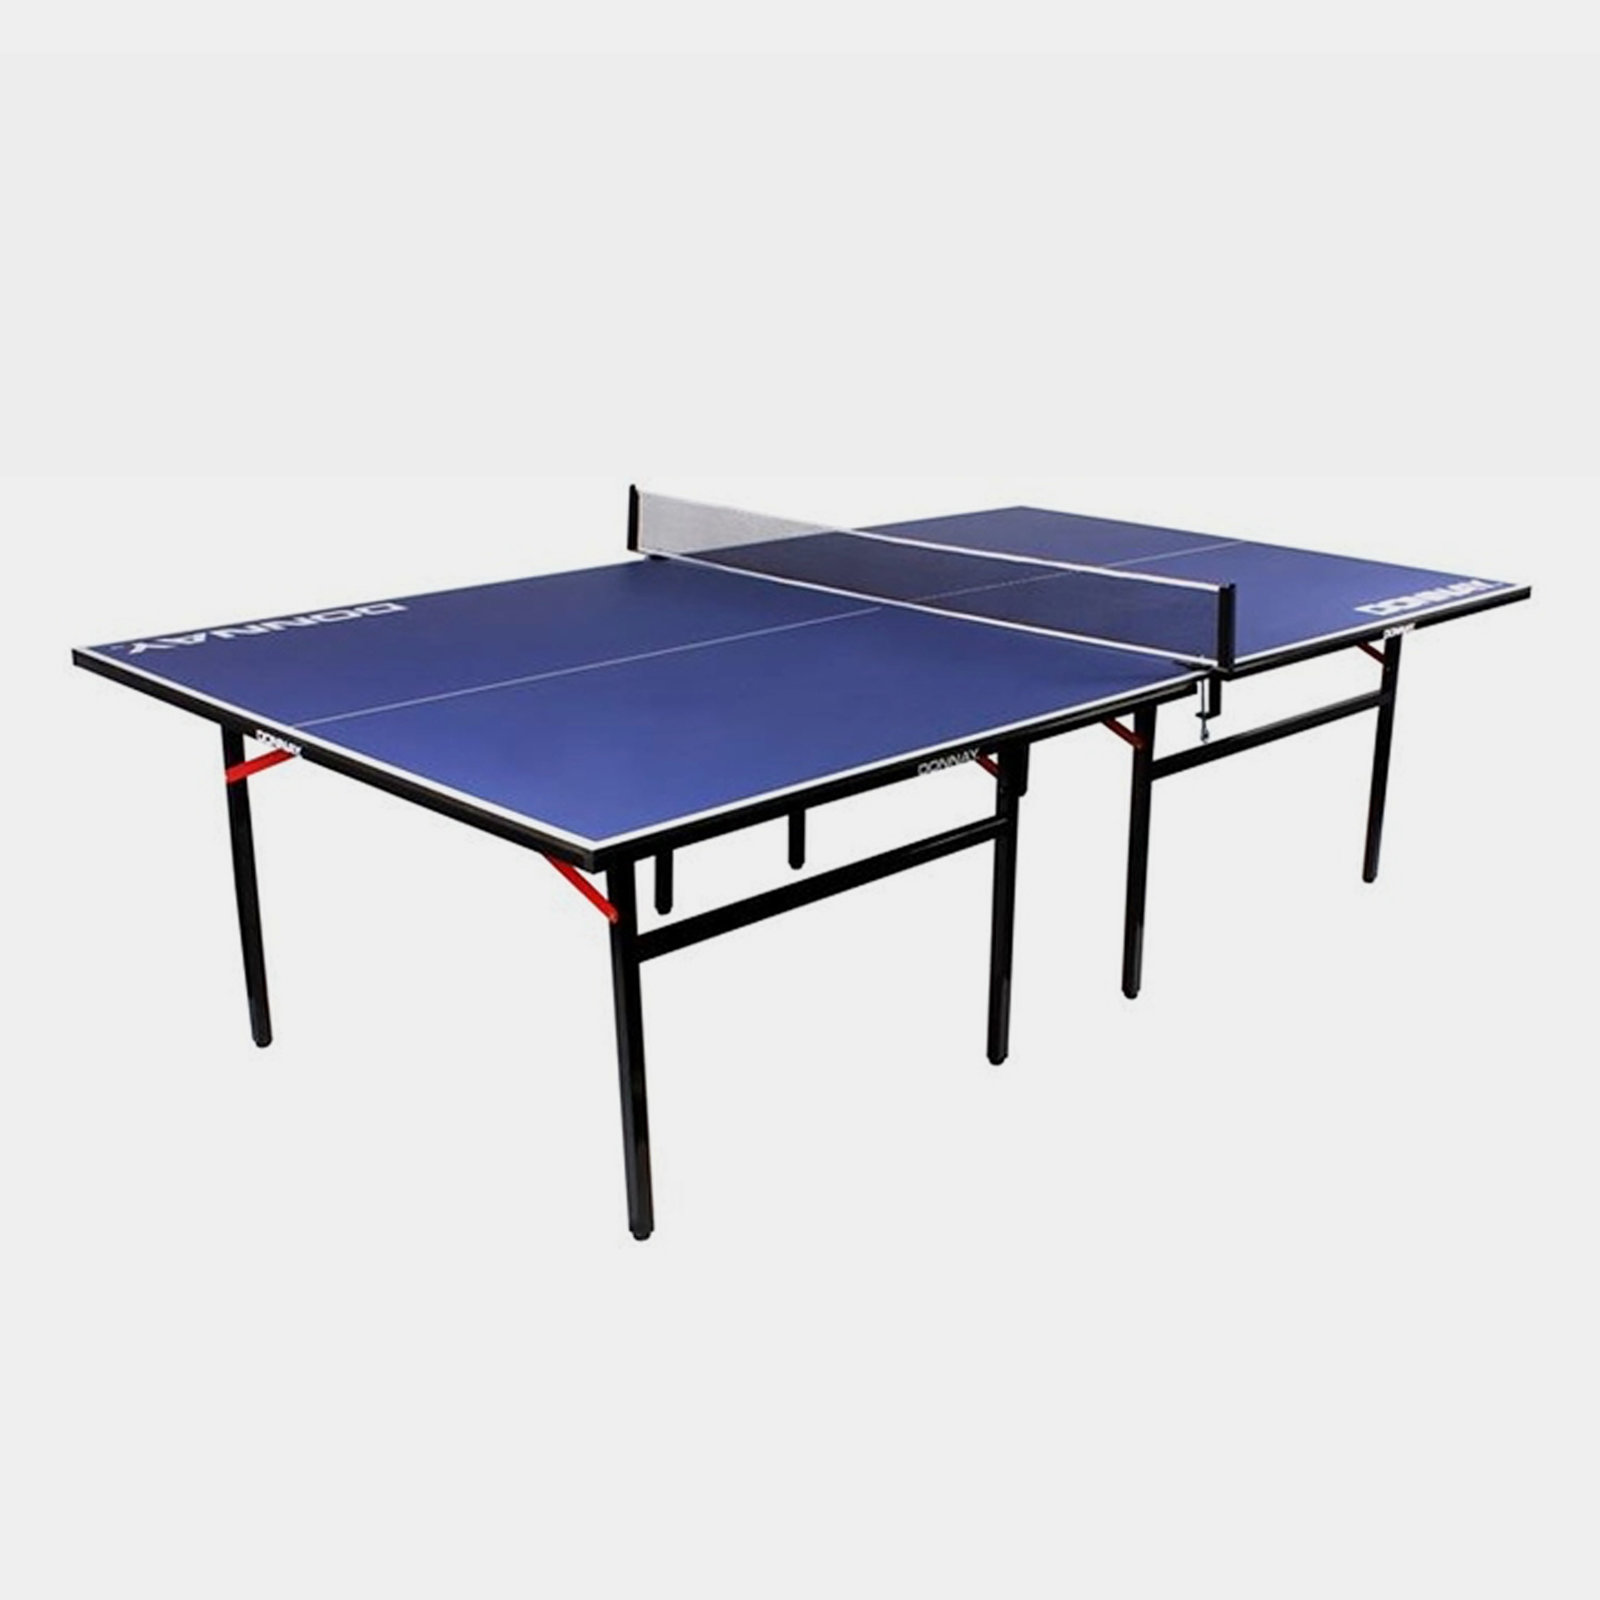 Indoor Compact Folding Table Tennis Table